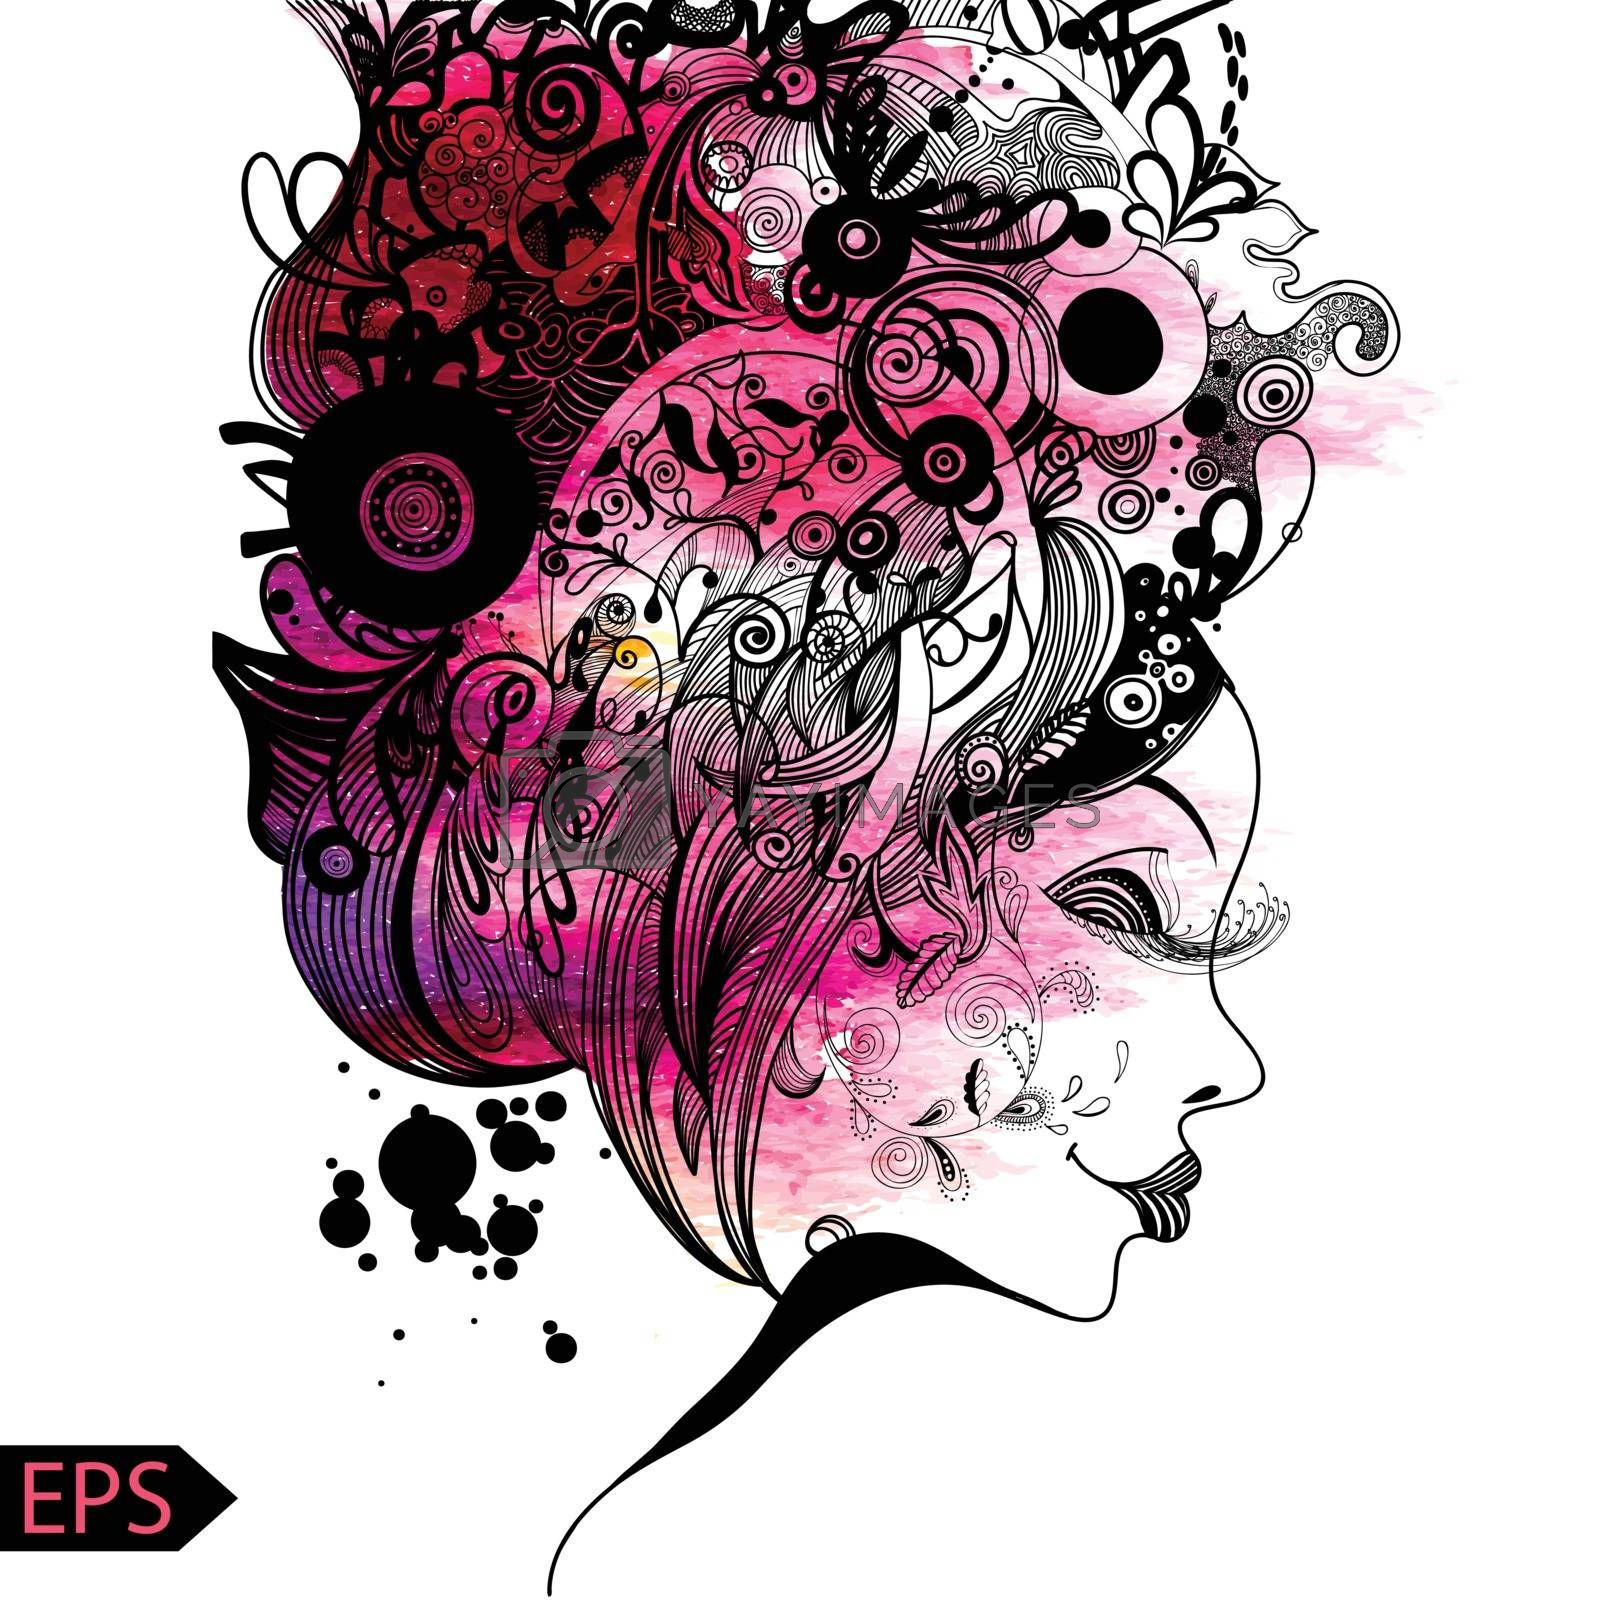 Beautiful fashion women with abstract and floral elements. EPS illustration.